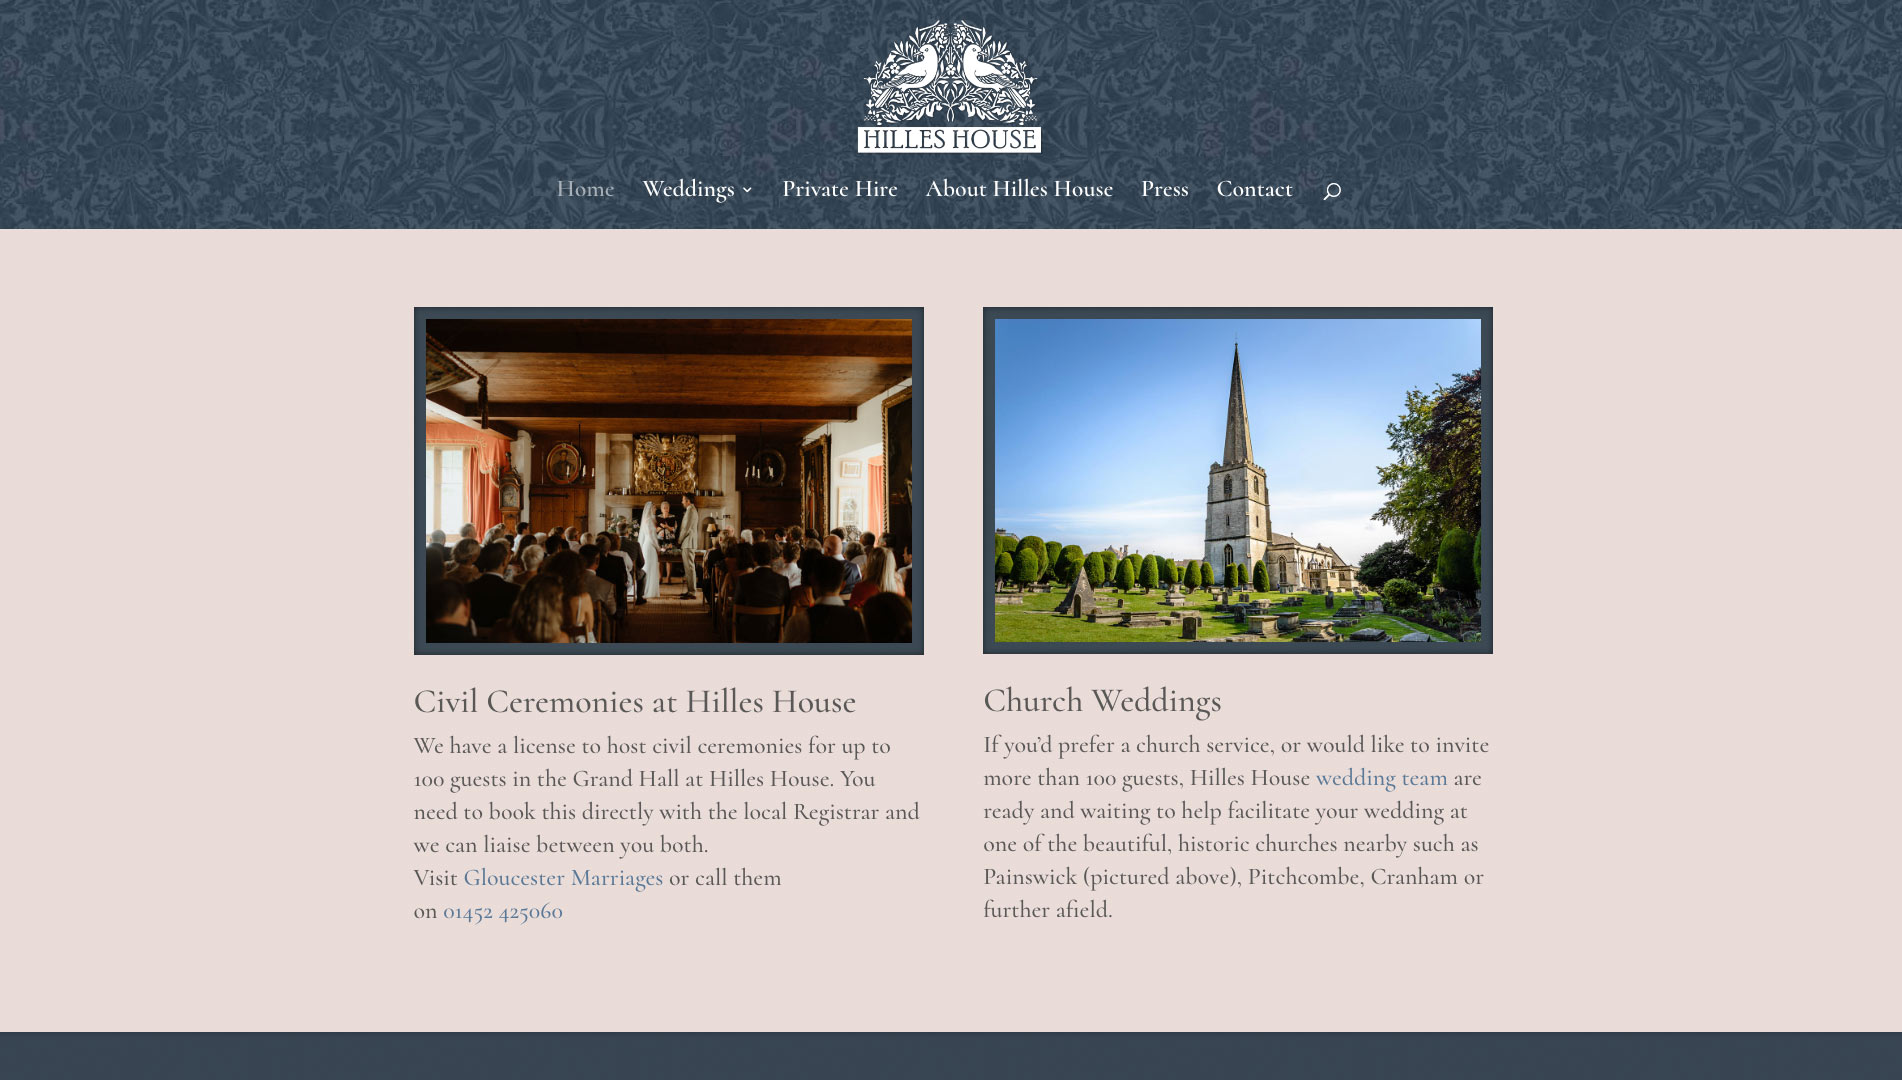 Hilles House - wedding options page